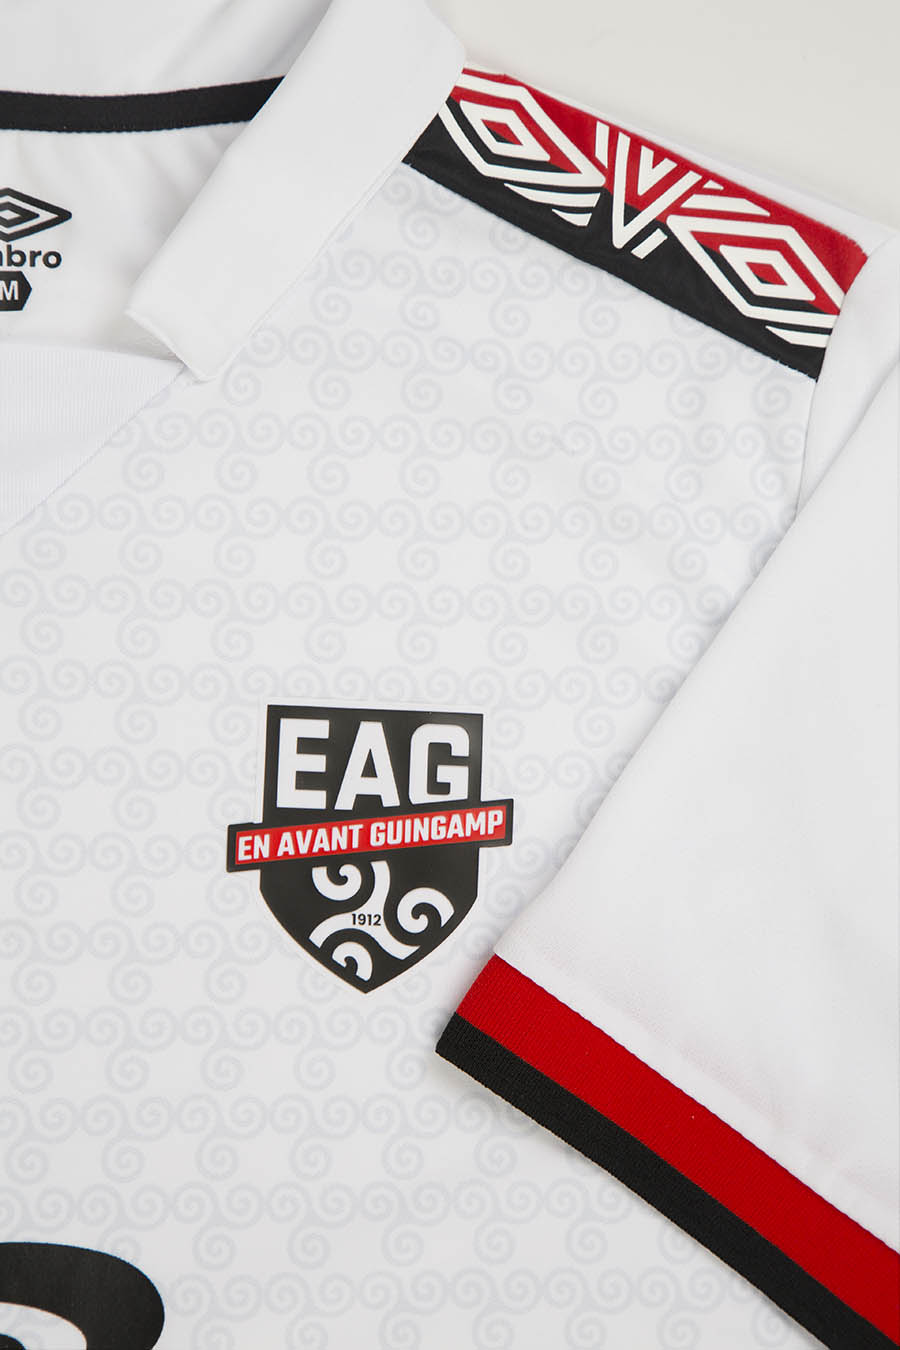 Umbro x EA Guingamp Saison 2019-20 - Kit Away